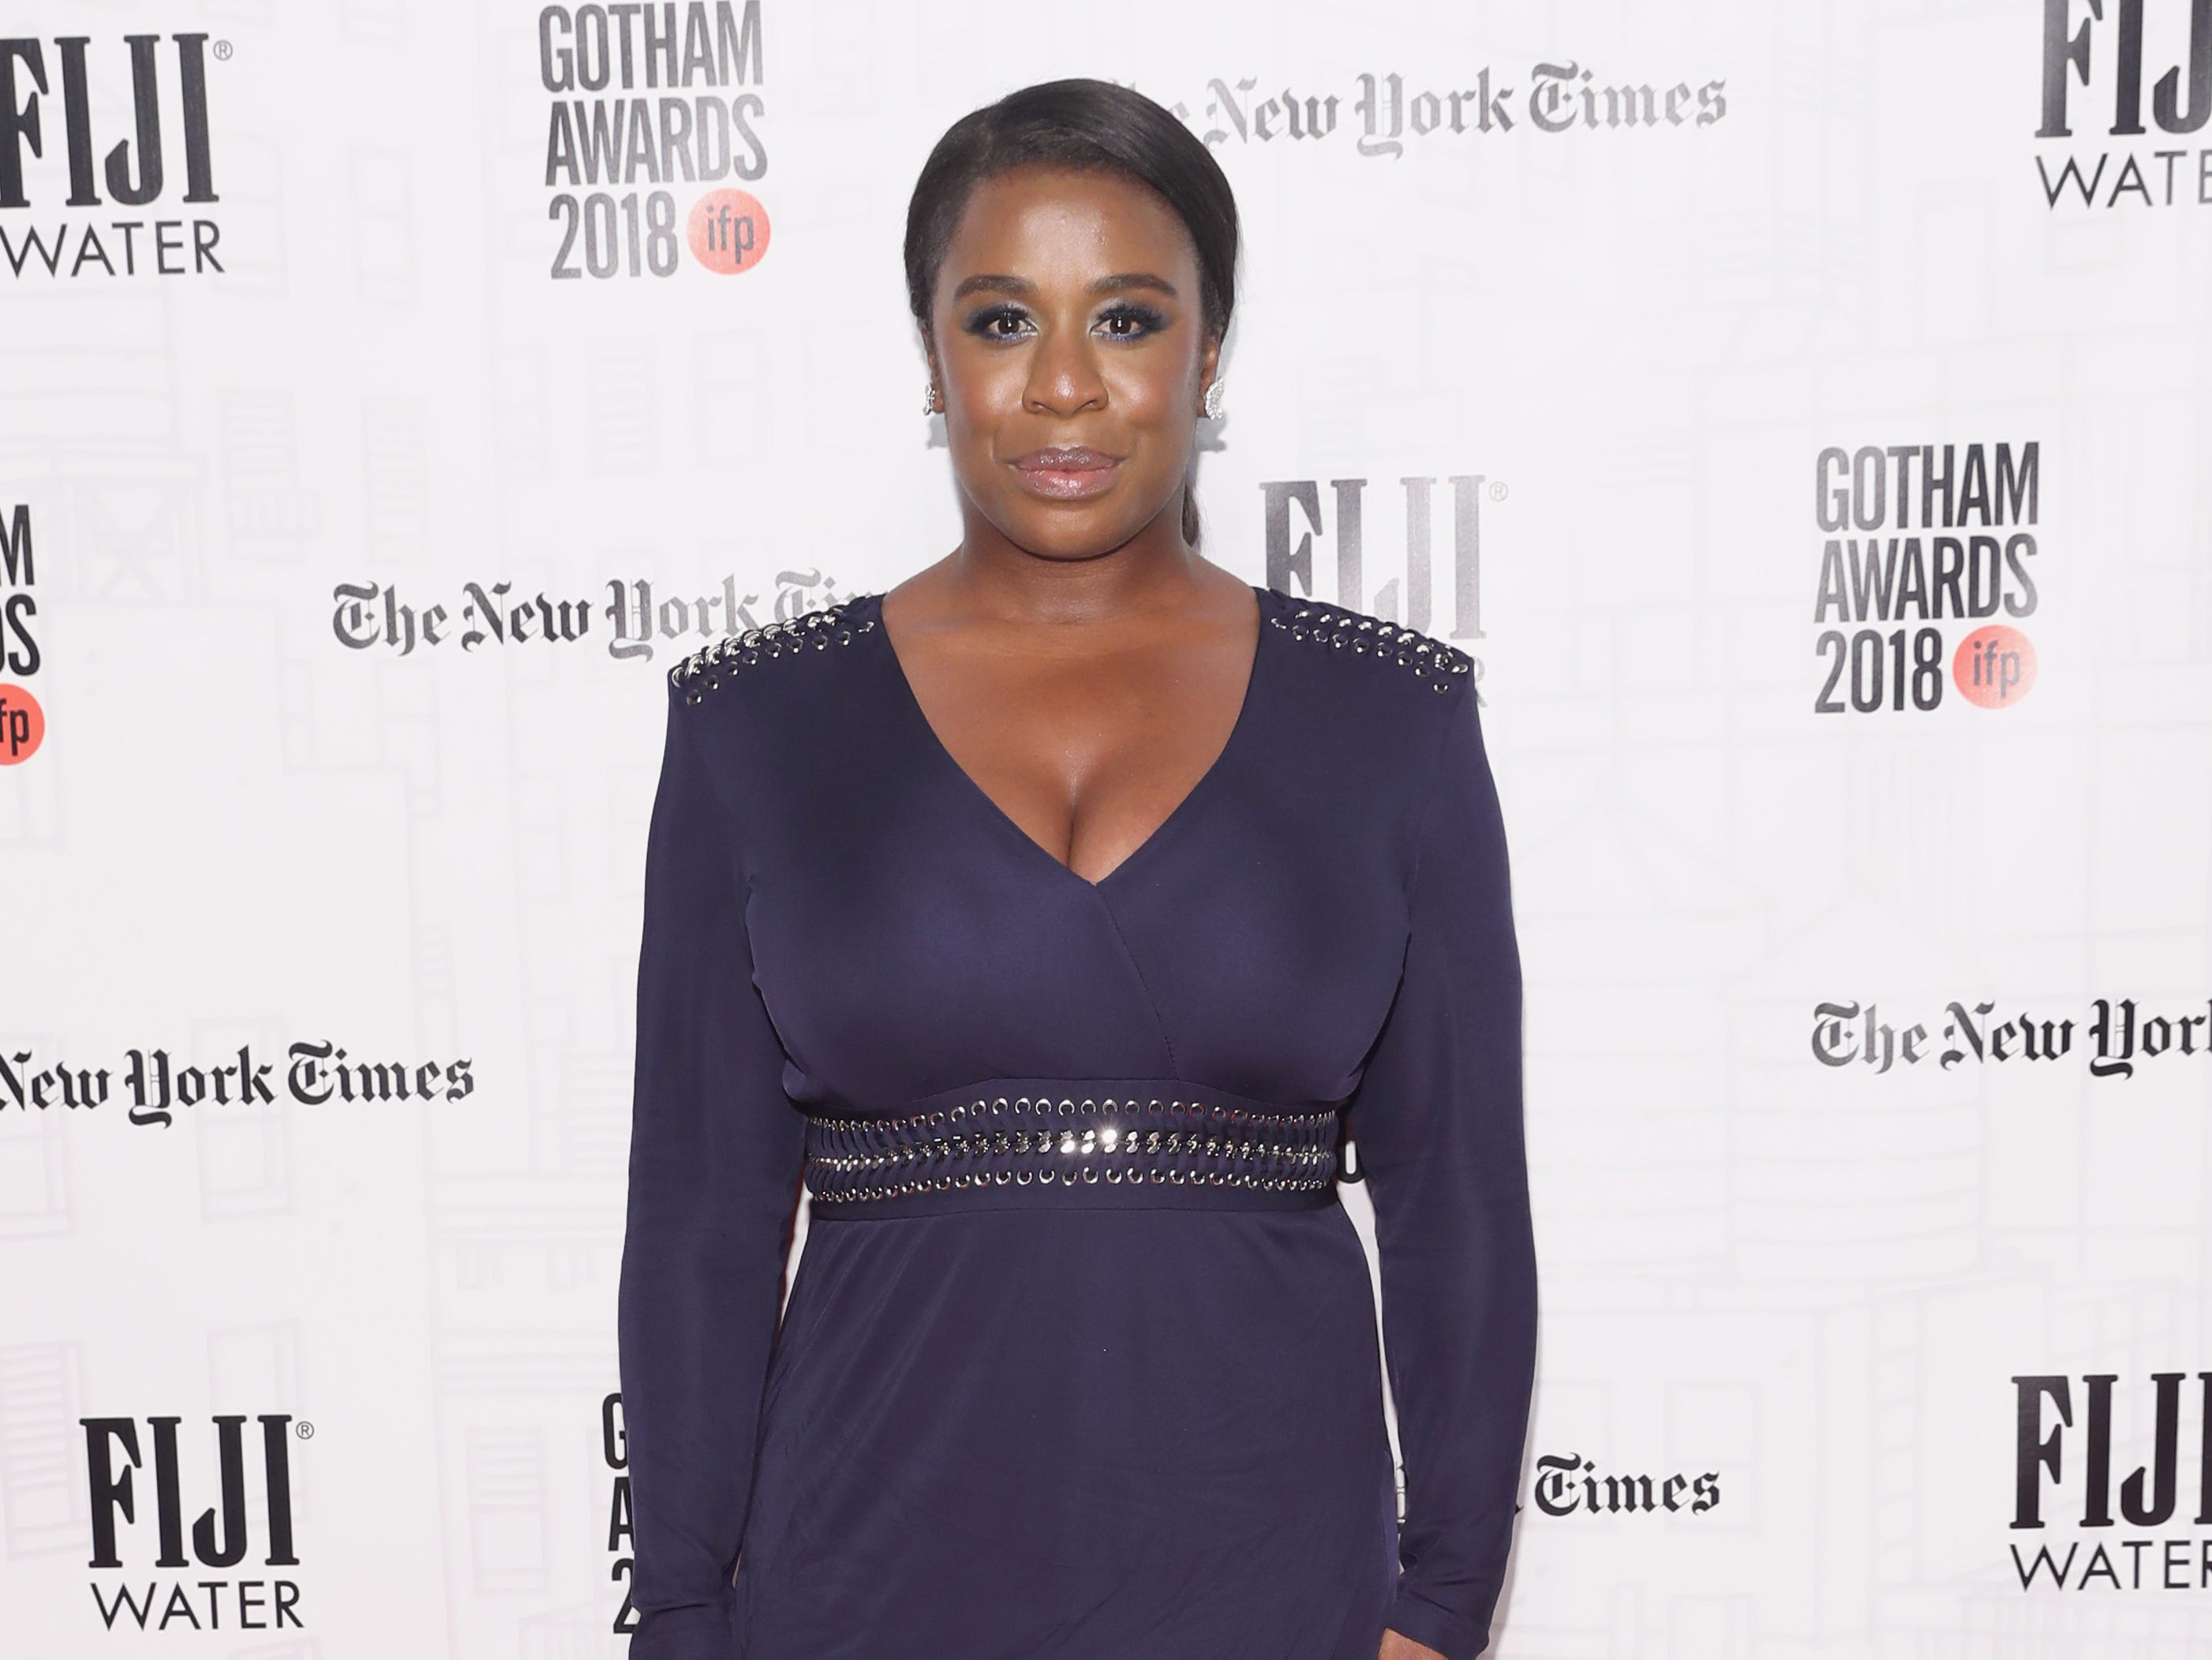 NEW YORK, NY - NOVEMBER 26:  Uzo Aduba attends the 2018 IFP Gotham Awards with FIJI Water at Cipriani, Wall Street on November 26, 2018 in New York City.  (Photo by Cindy Ord/Getty Images for FIJI Water) ORG XMIT: 775261572 ORIG FILE ID: 1065562754